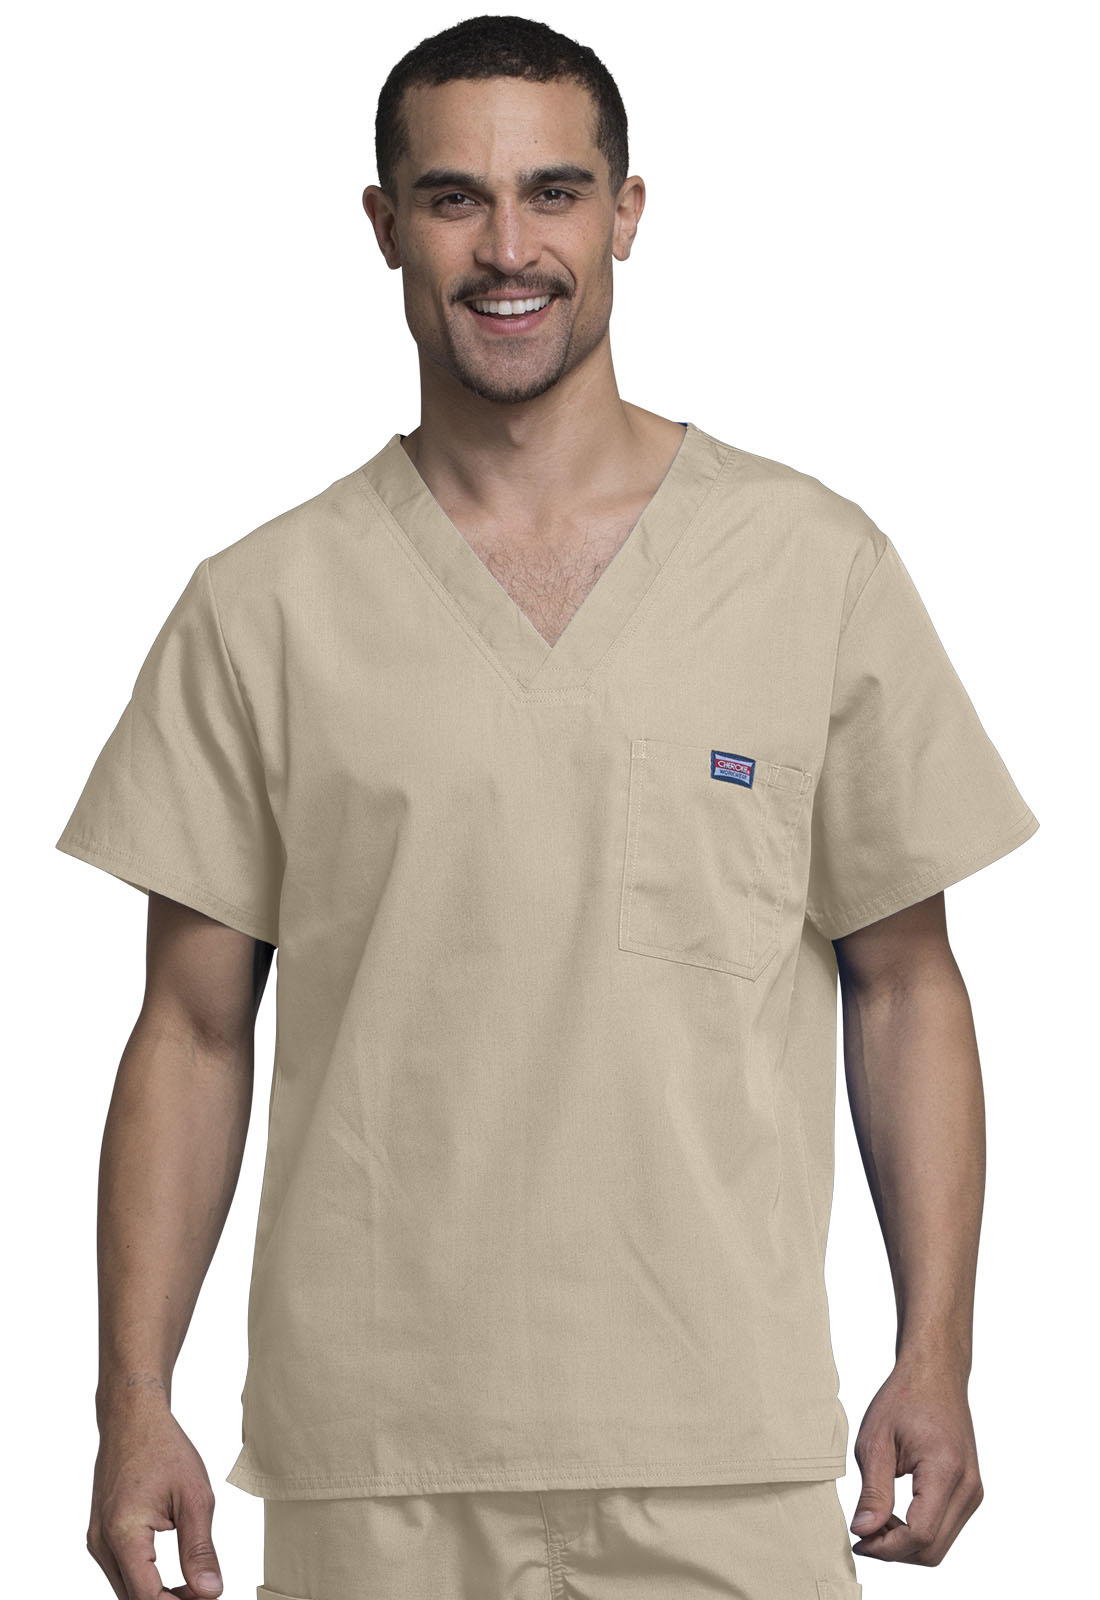 8fd73e8b826 WW Originals Men's V-Neck Top in Khaki 4789-KAKW from Scrubs Express